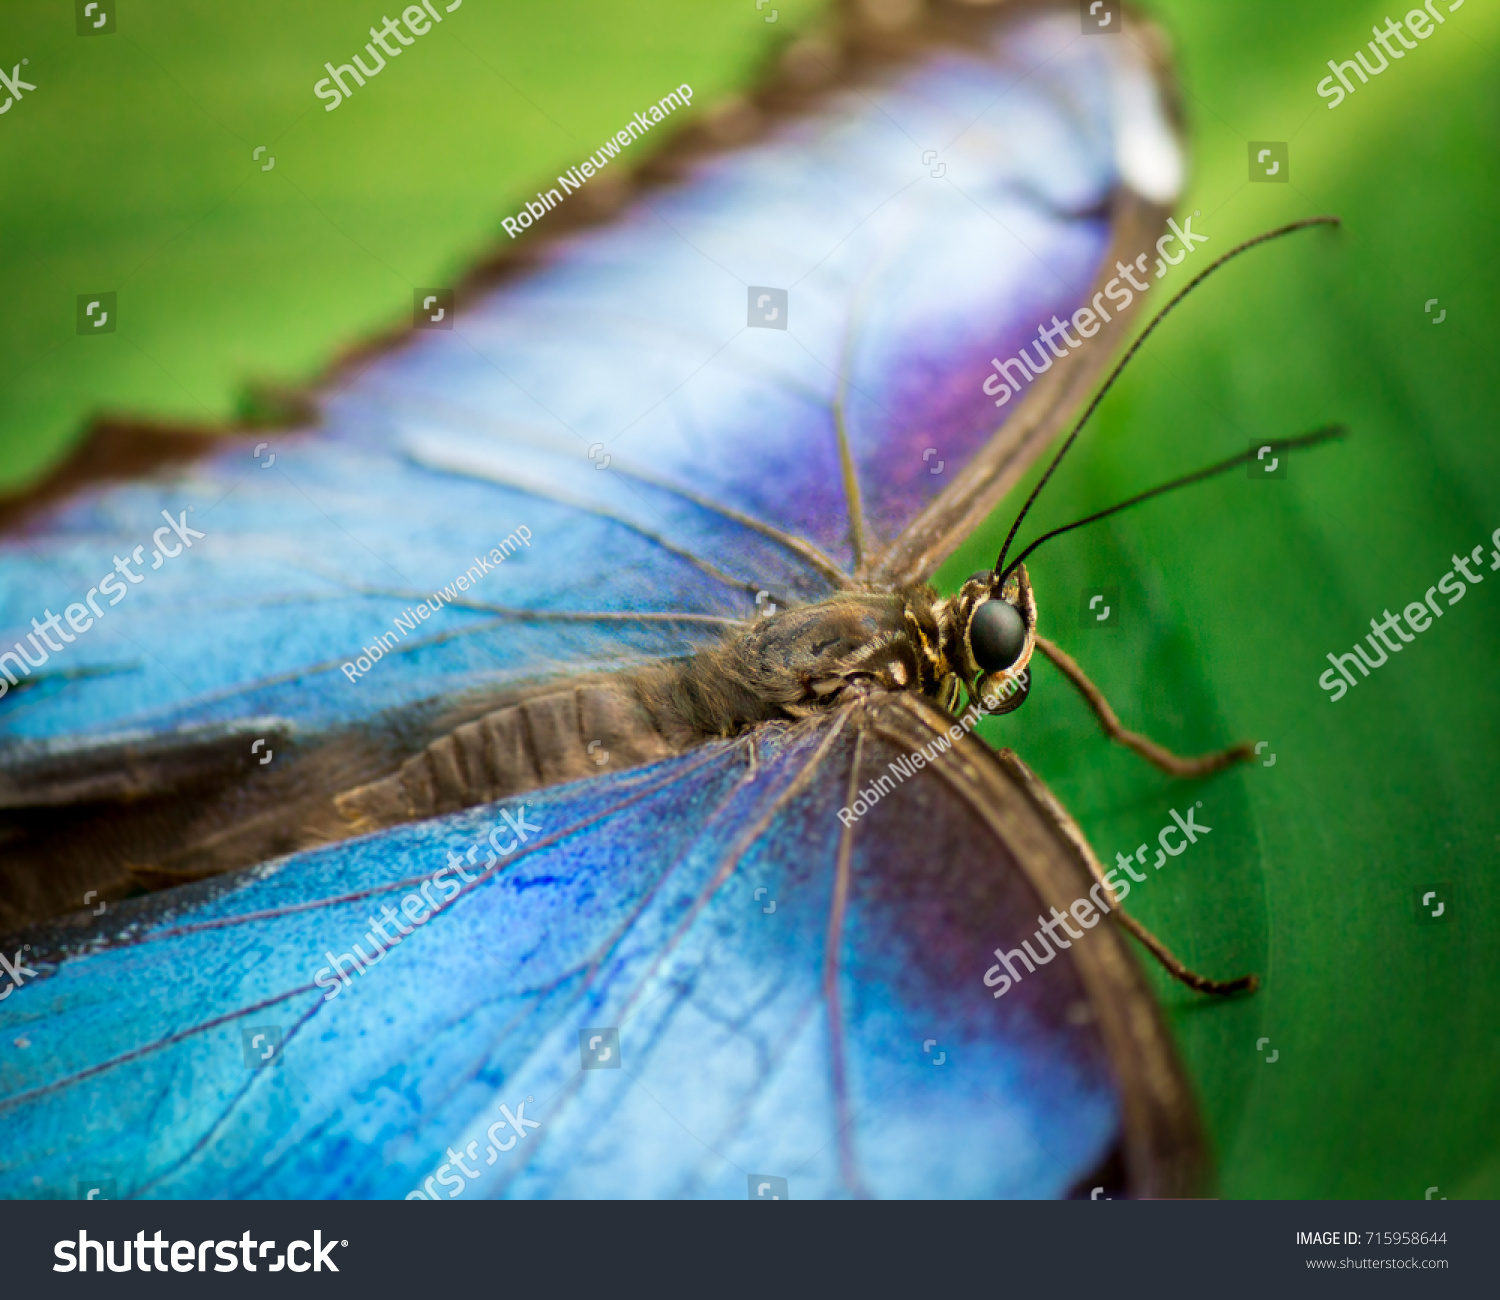 stock-photo-blue-morpho-butterfly-scient